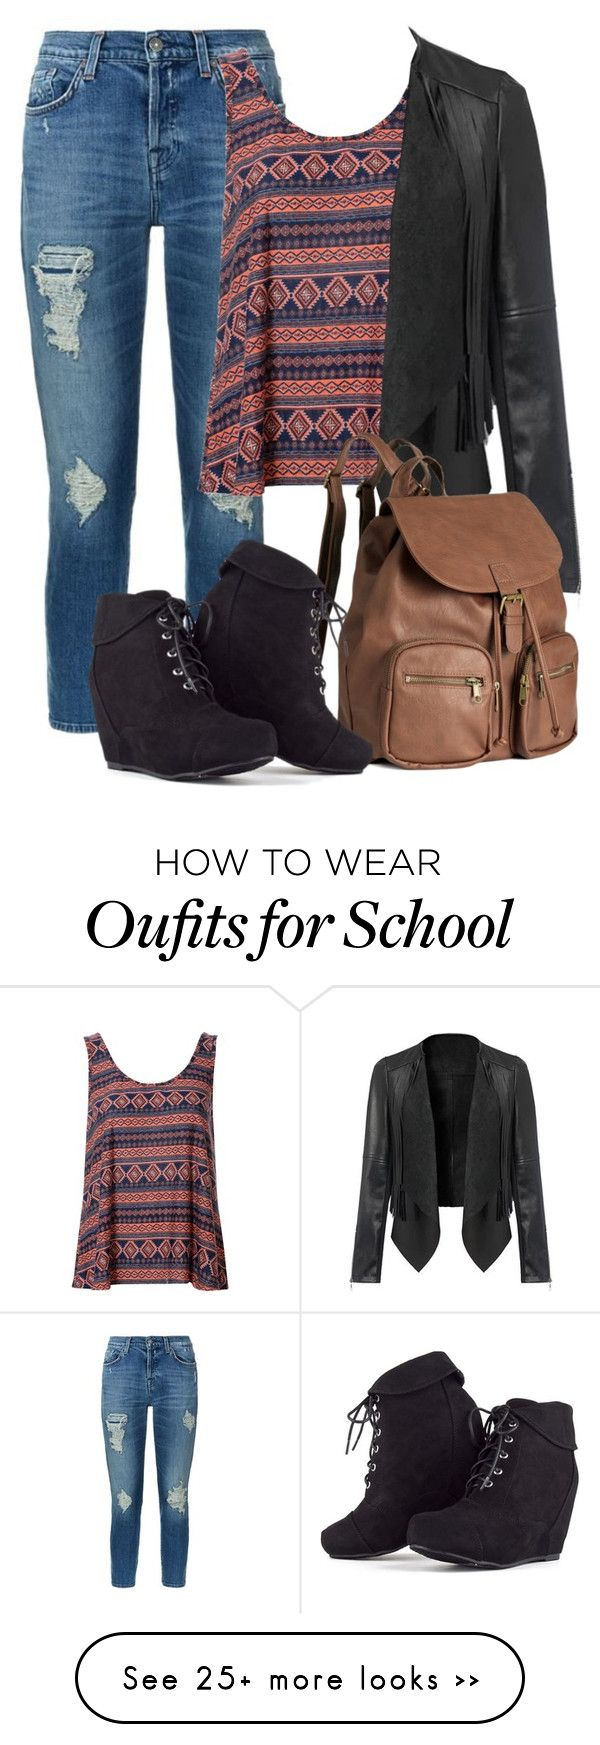 """""""School Time"""" by superal on Polyvore featuring 7 For All Mankind, Glamorous, H&M and SchoolTime"""